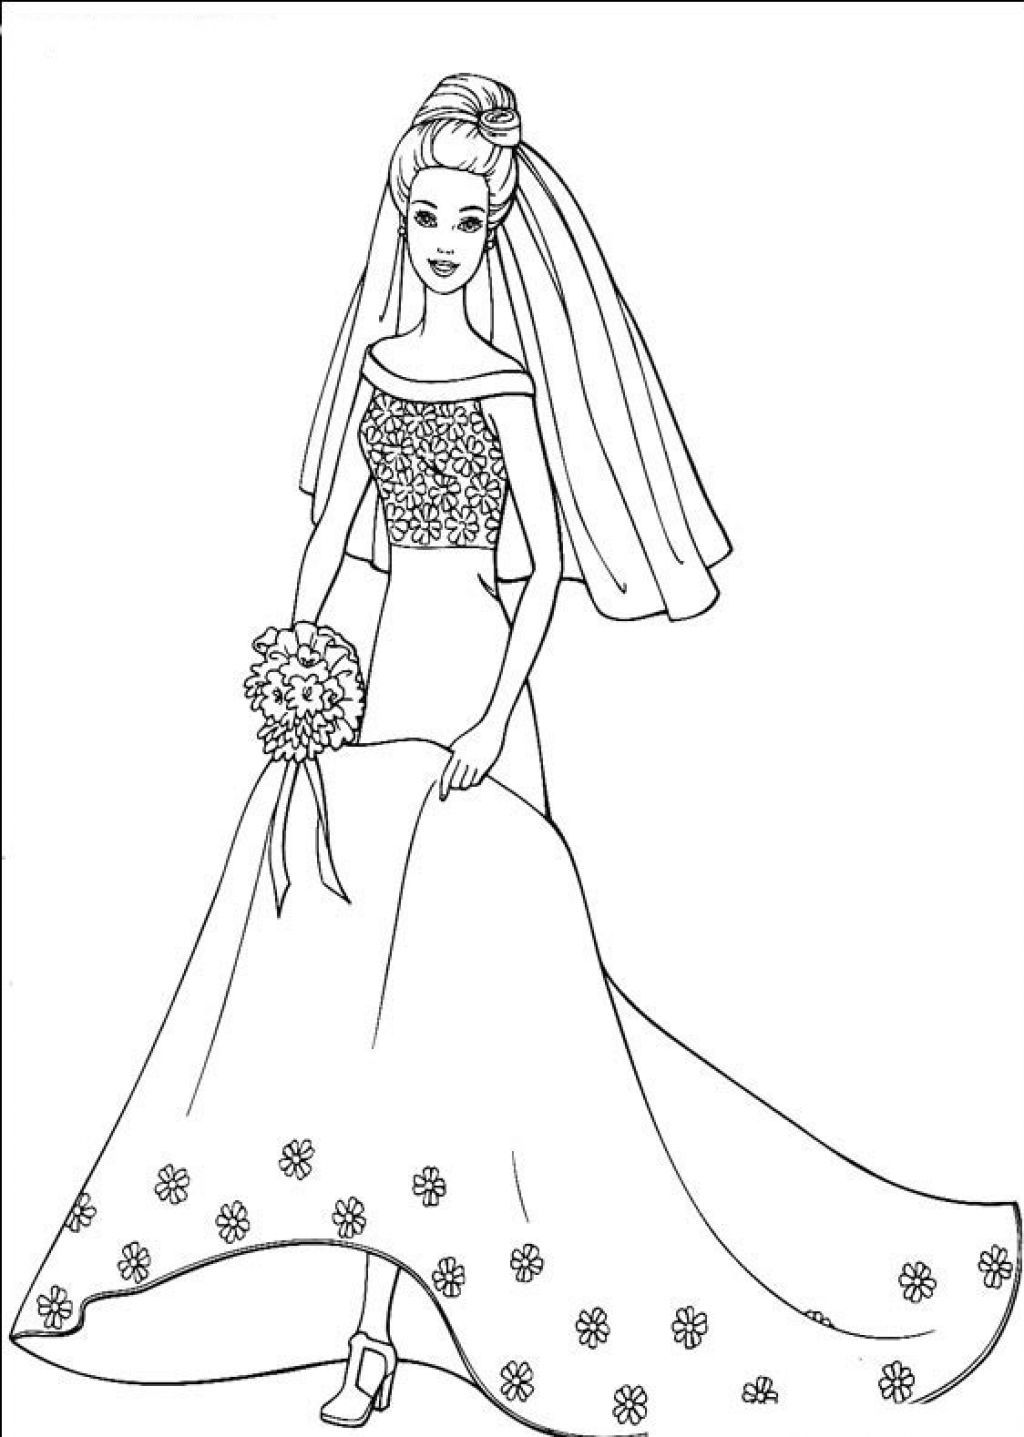 Barbie Coloring Page | Monster High | Pinterest | Dibujo